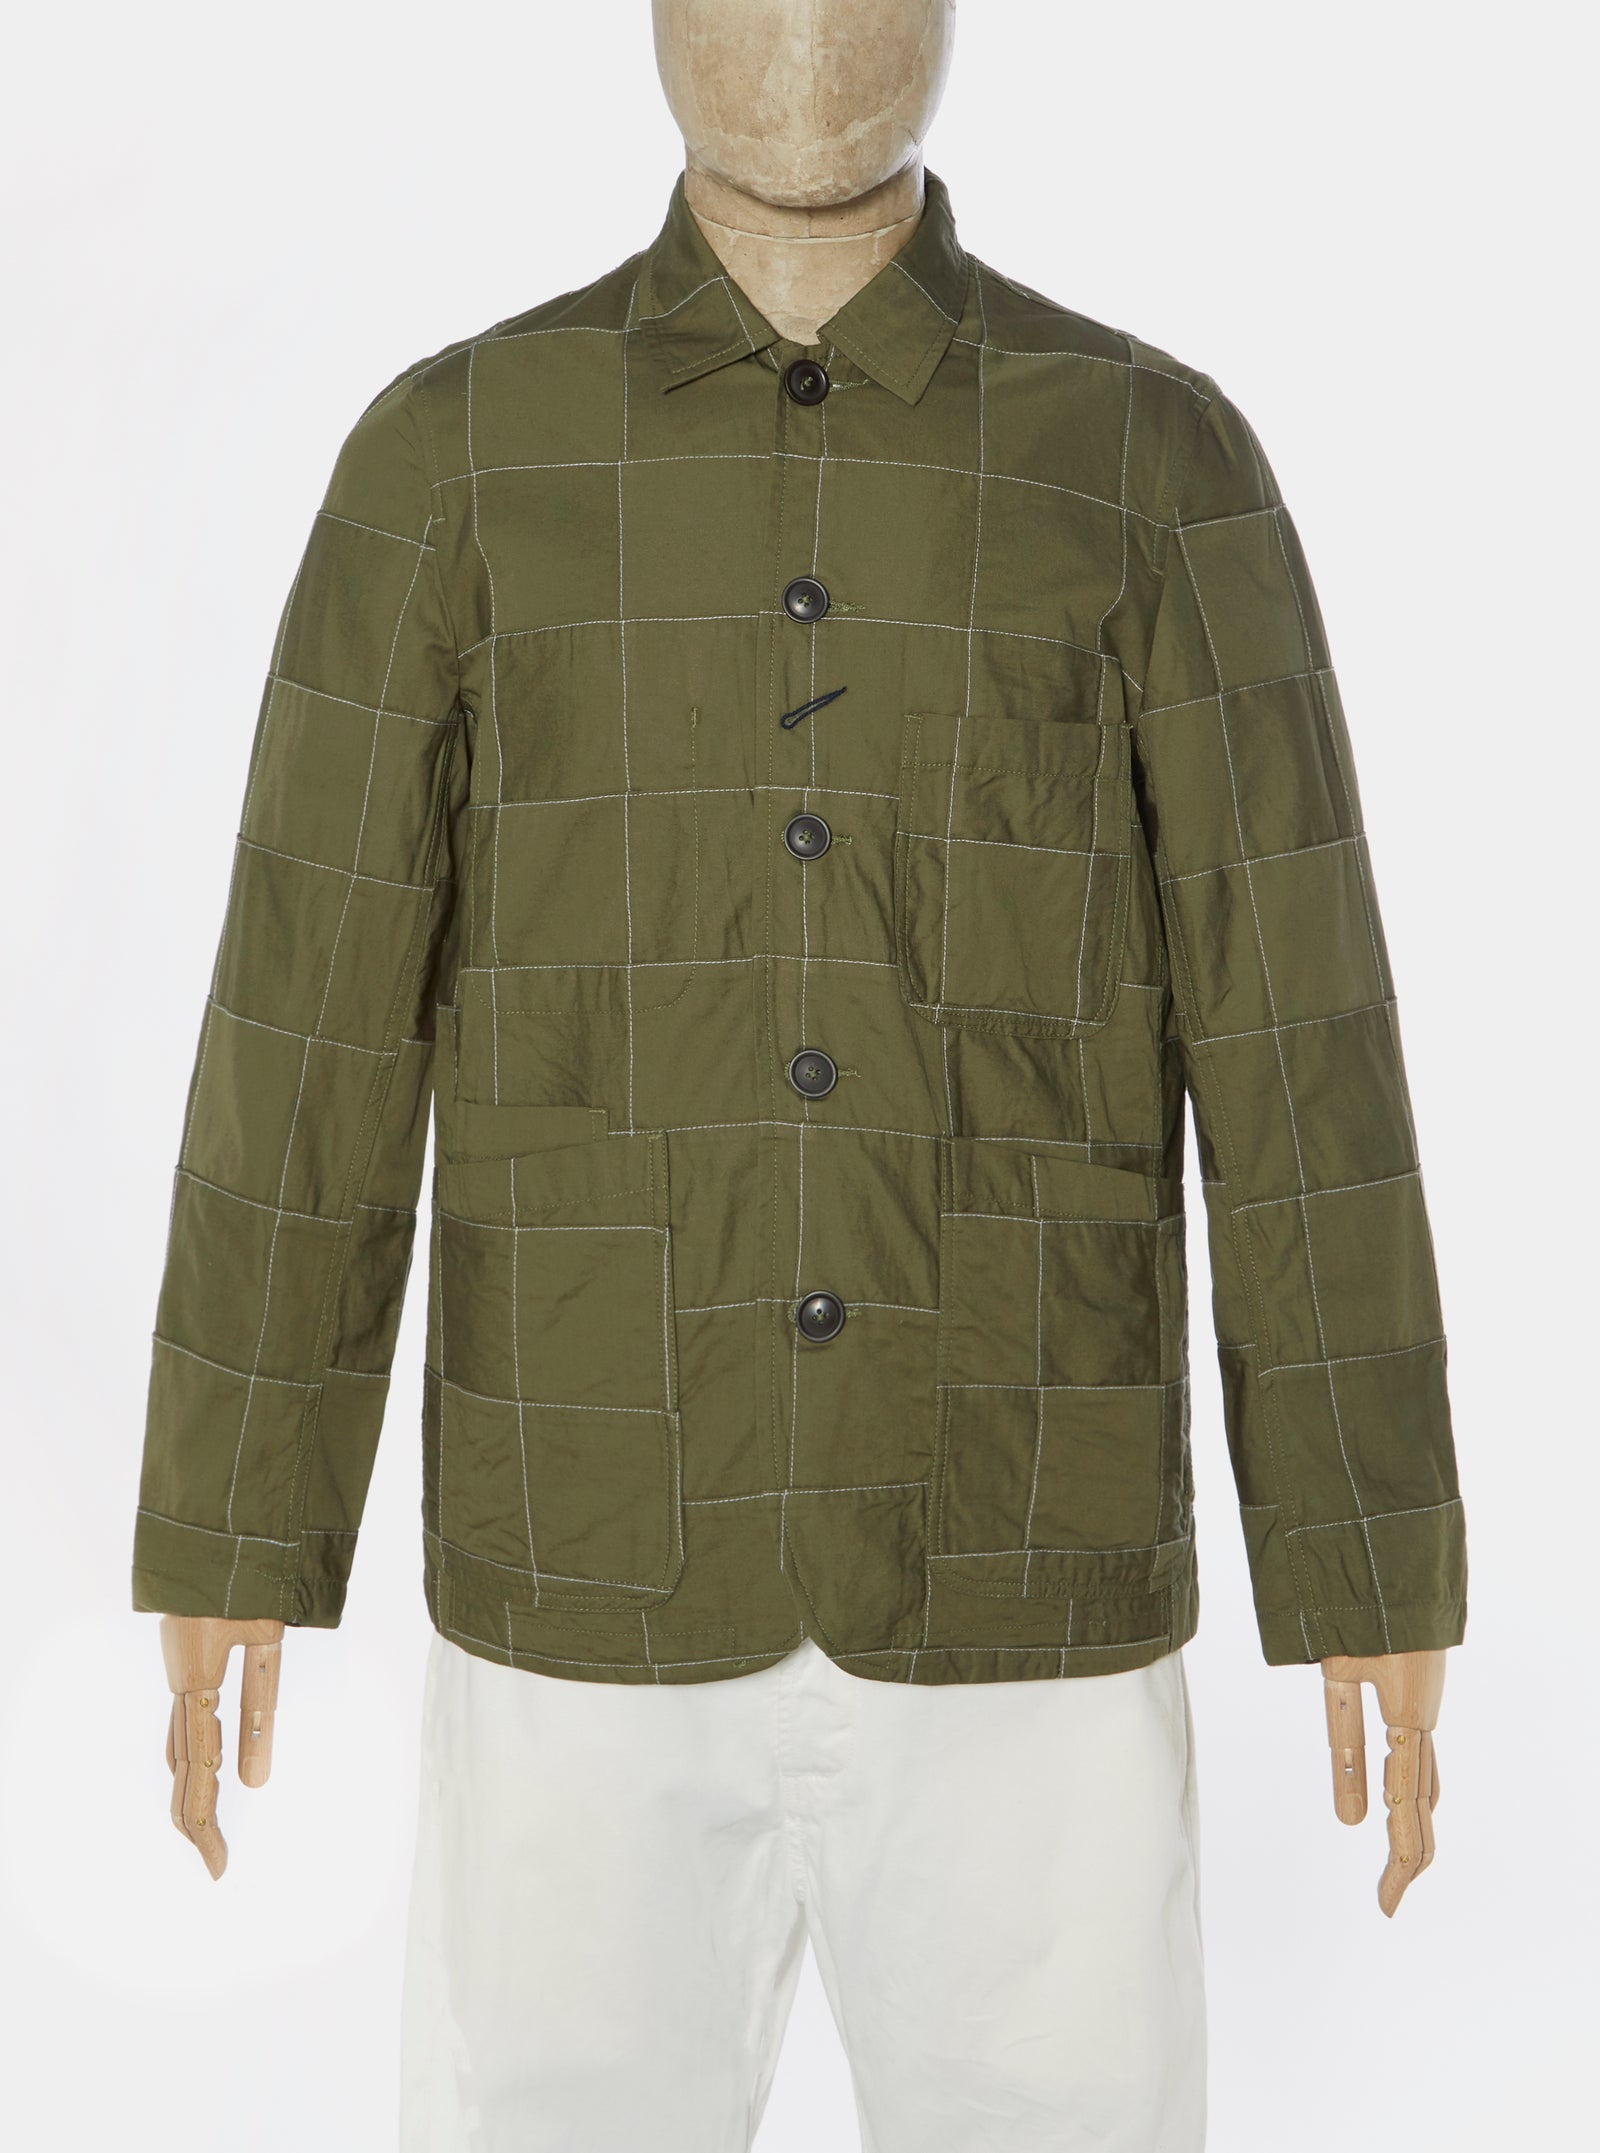 Universal Works Bakers Jacket in Olive Patchwork Fine Twill